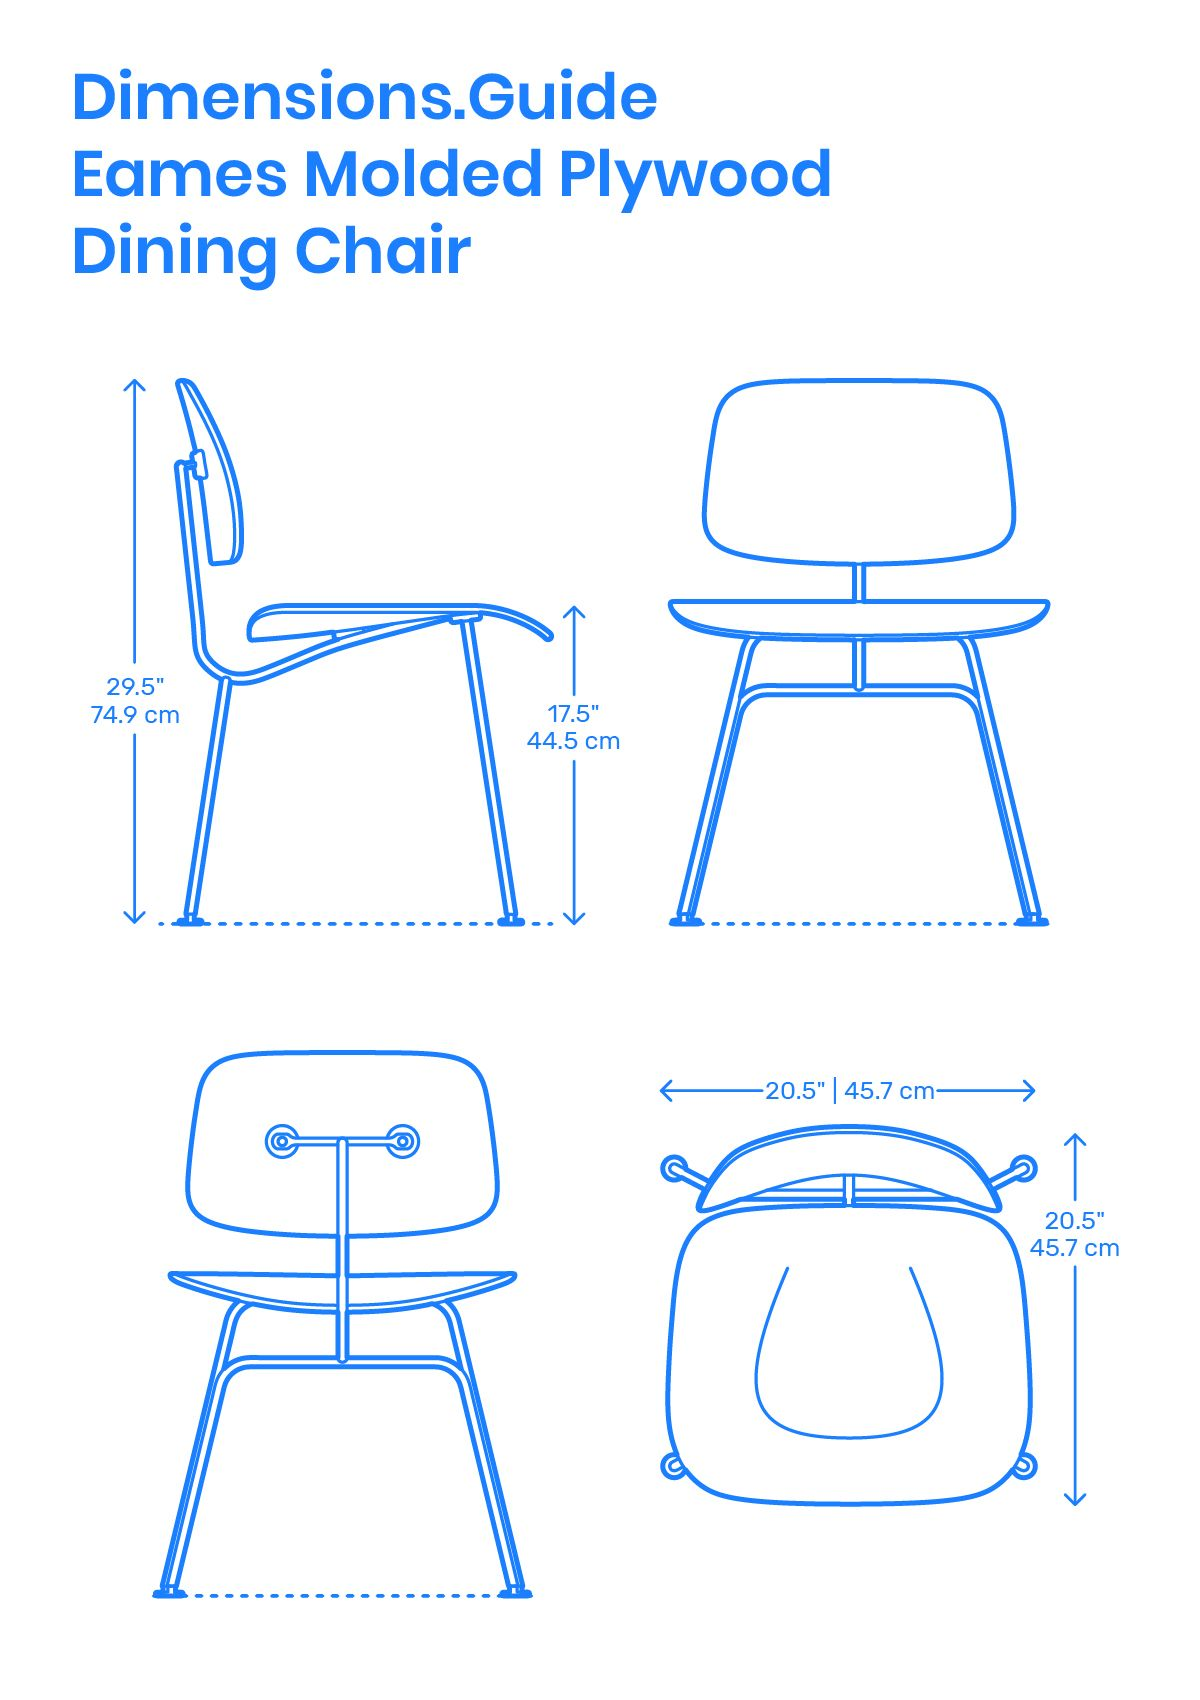 Eames Molded Plywood Dining Chair  Eames molded plywood dining